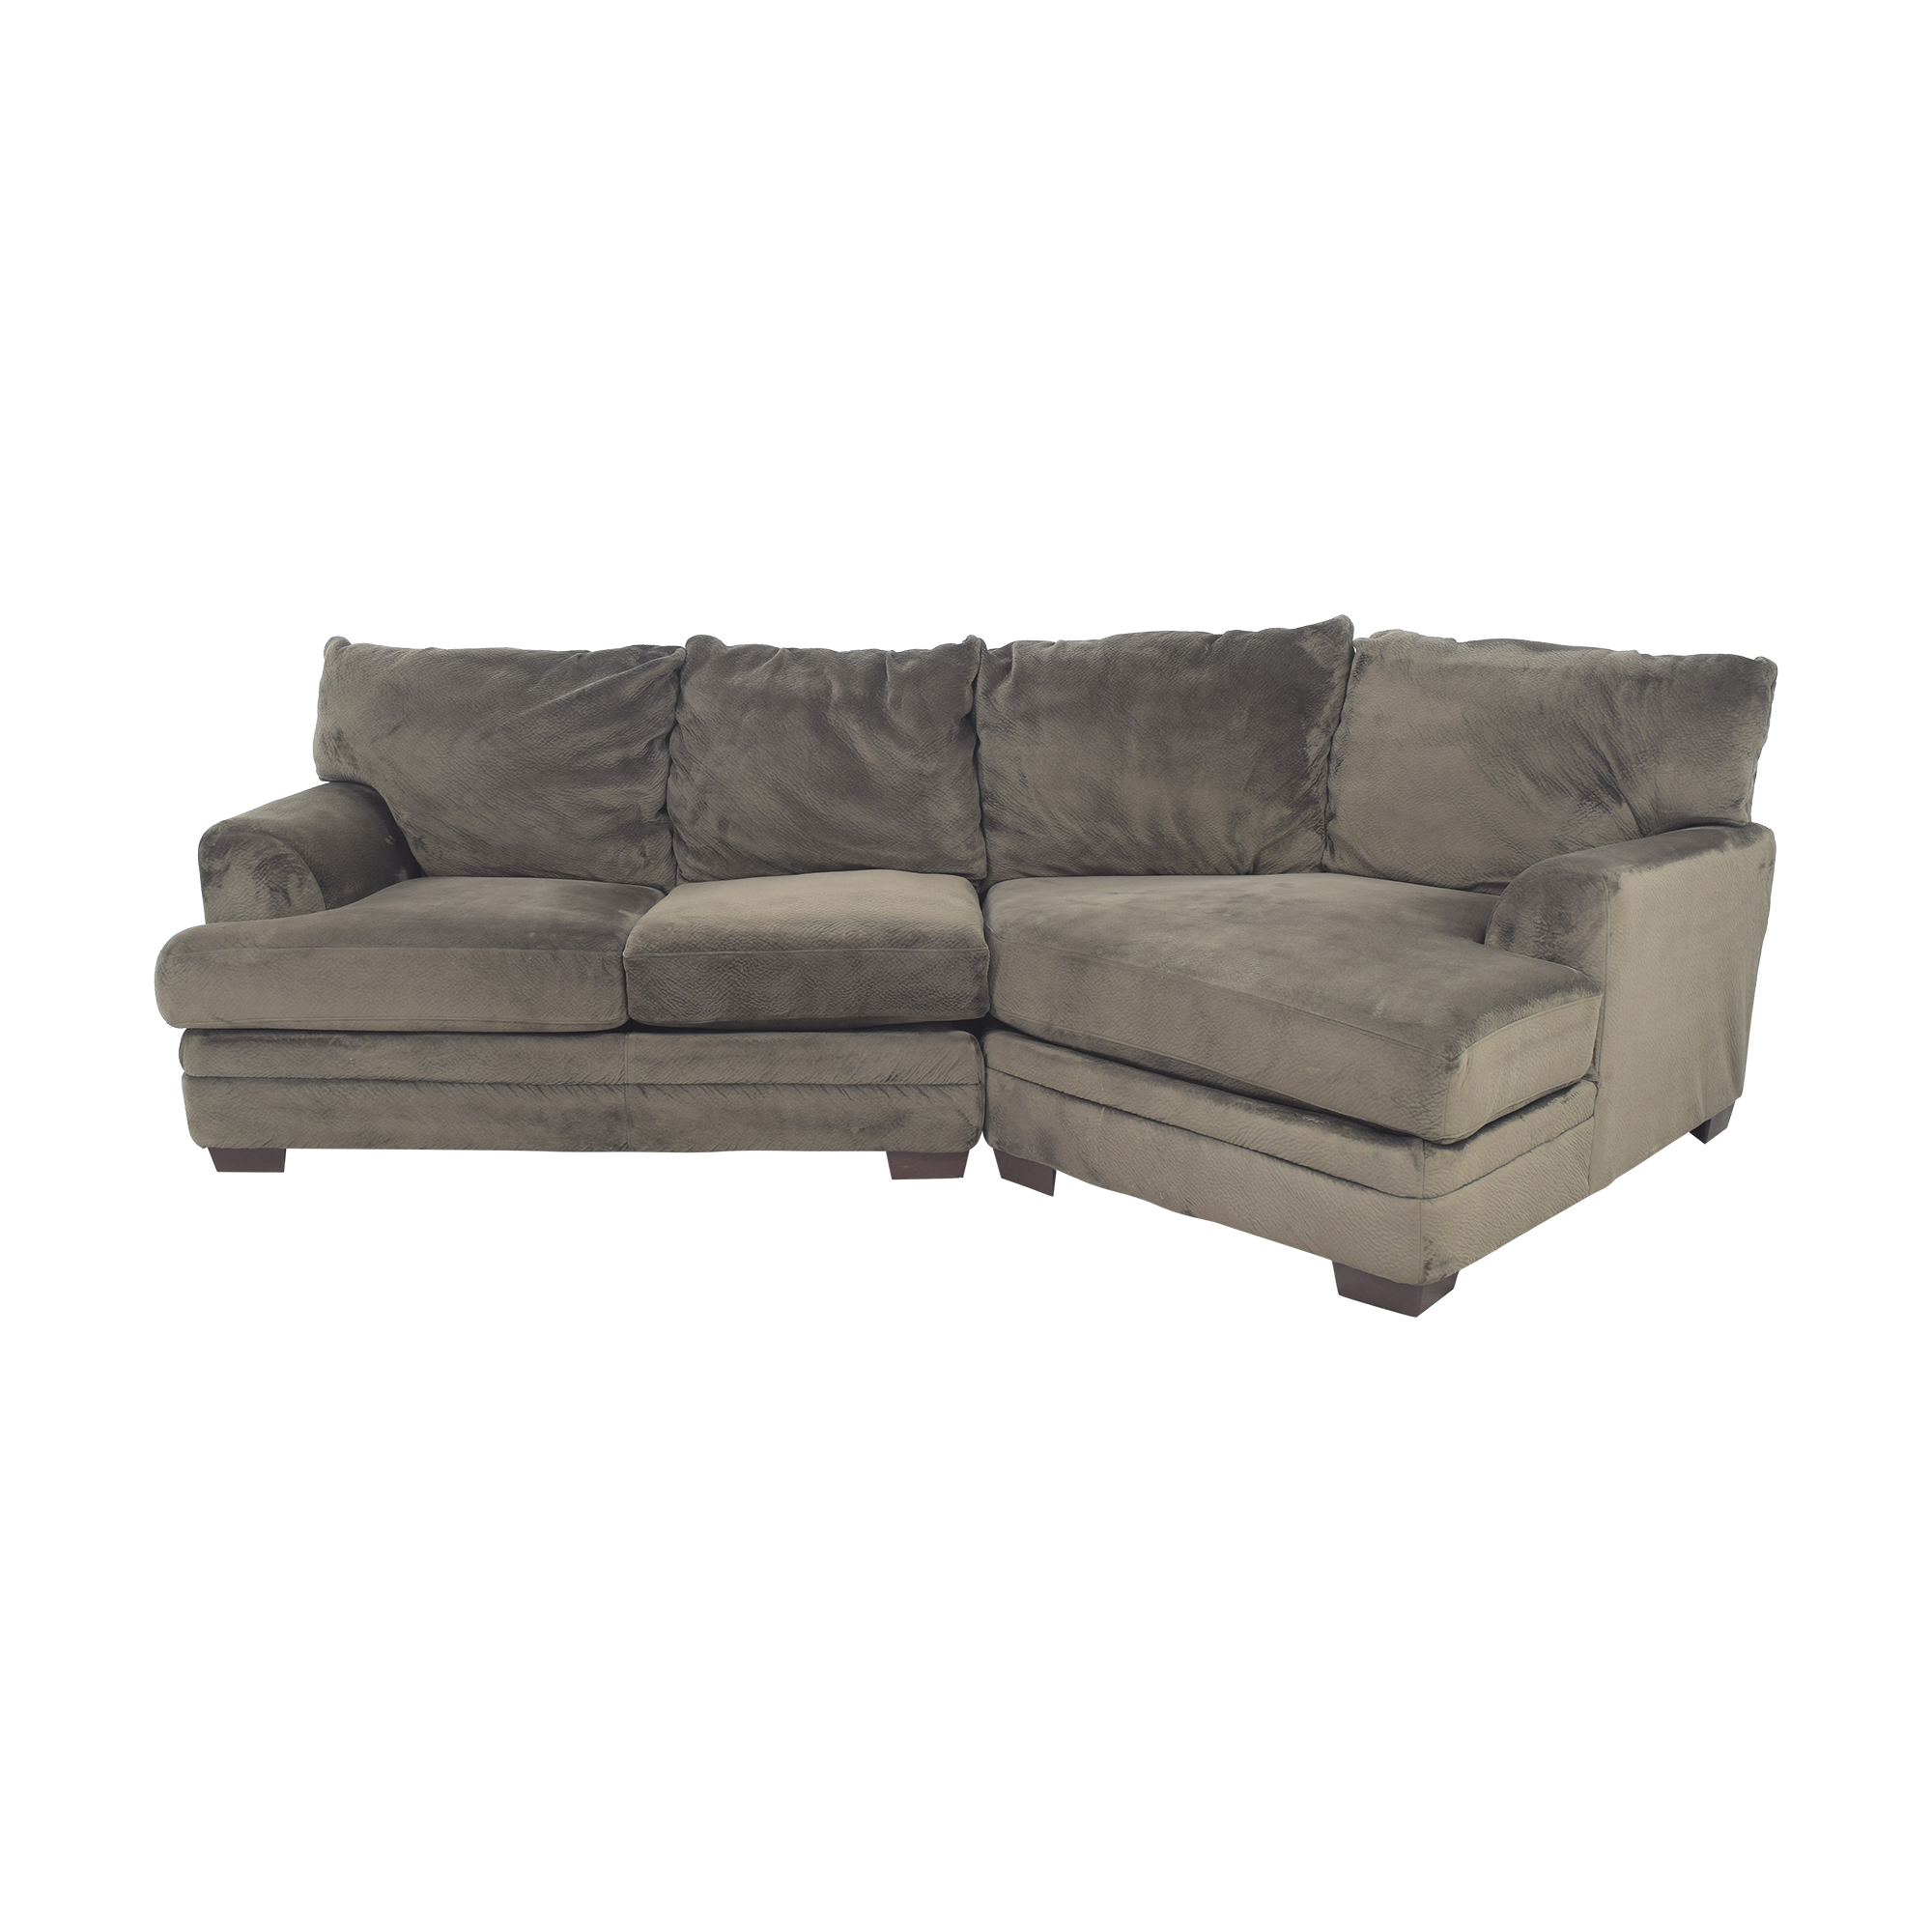 Catnapper Catnapper Sectional Sofa Sofas